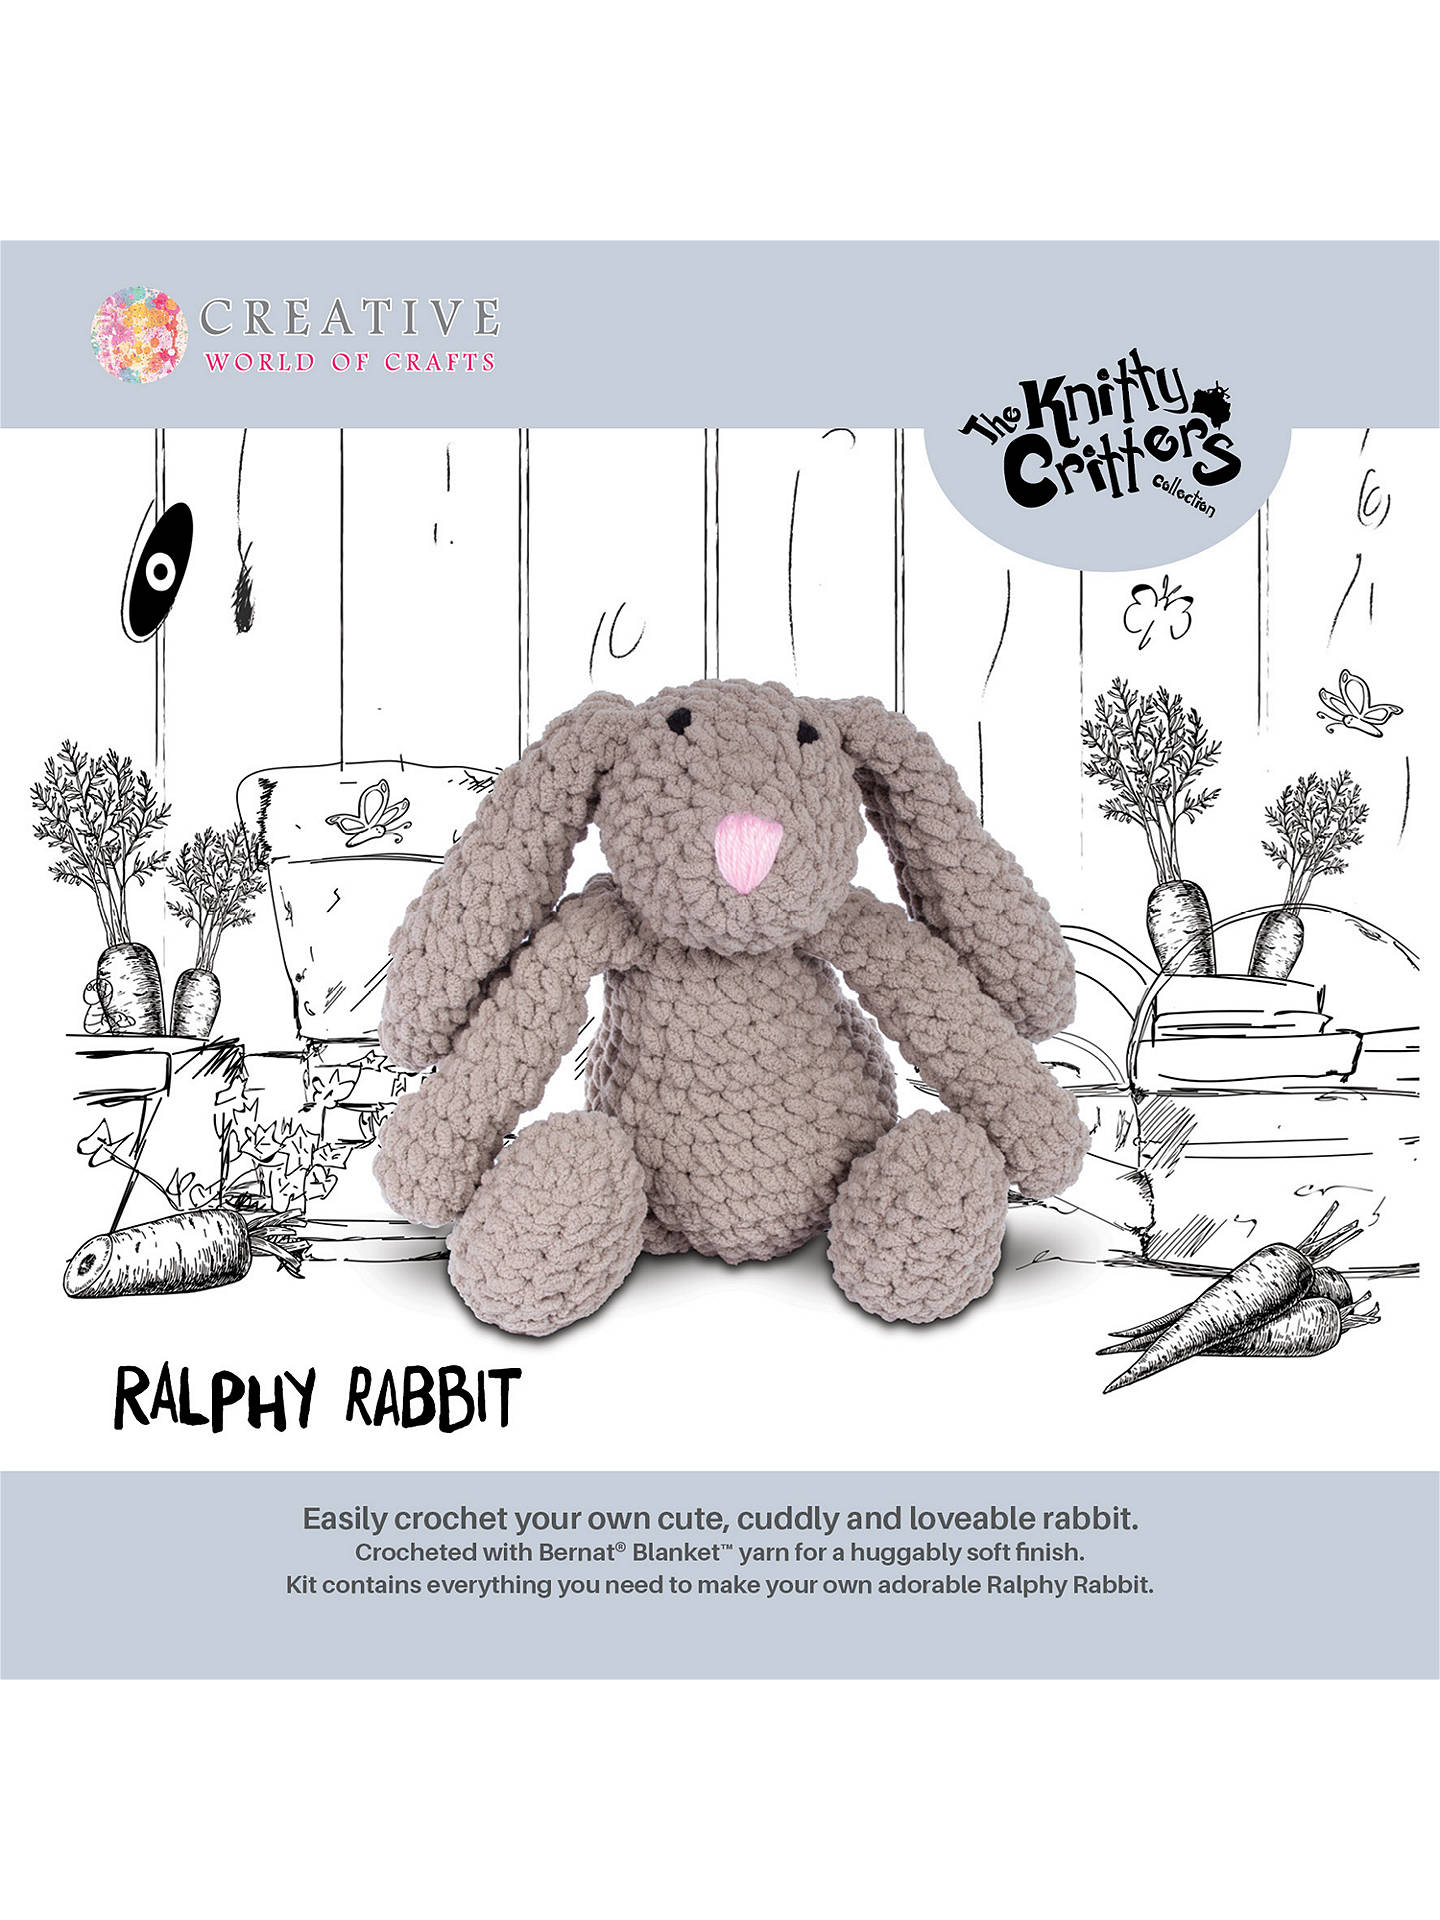 Buy Knitty Critters Ralphy Rabbit Crochet Kit Online at johnlewis.com